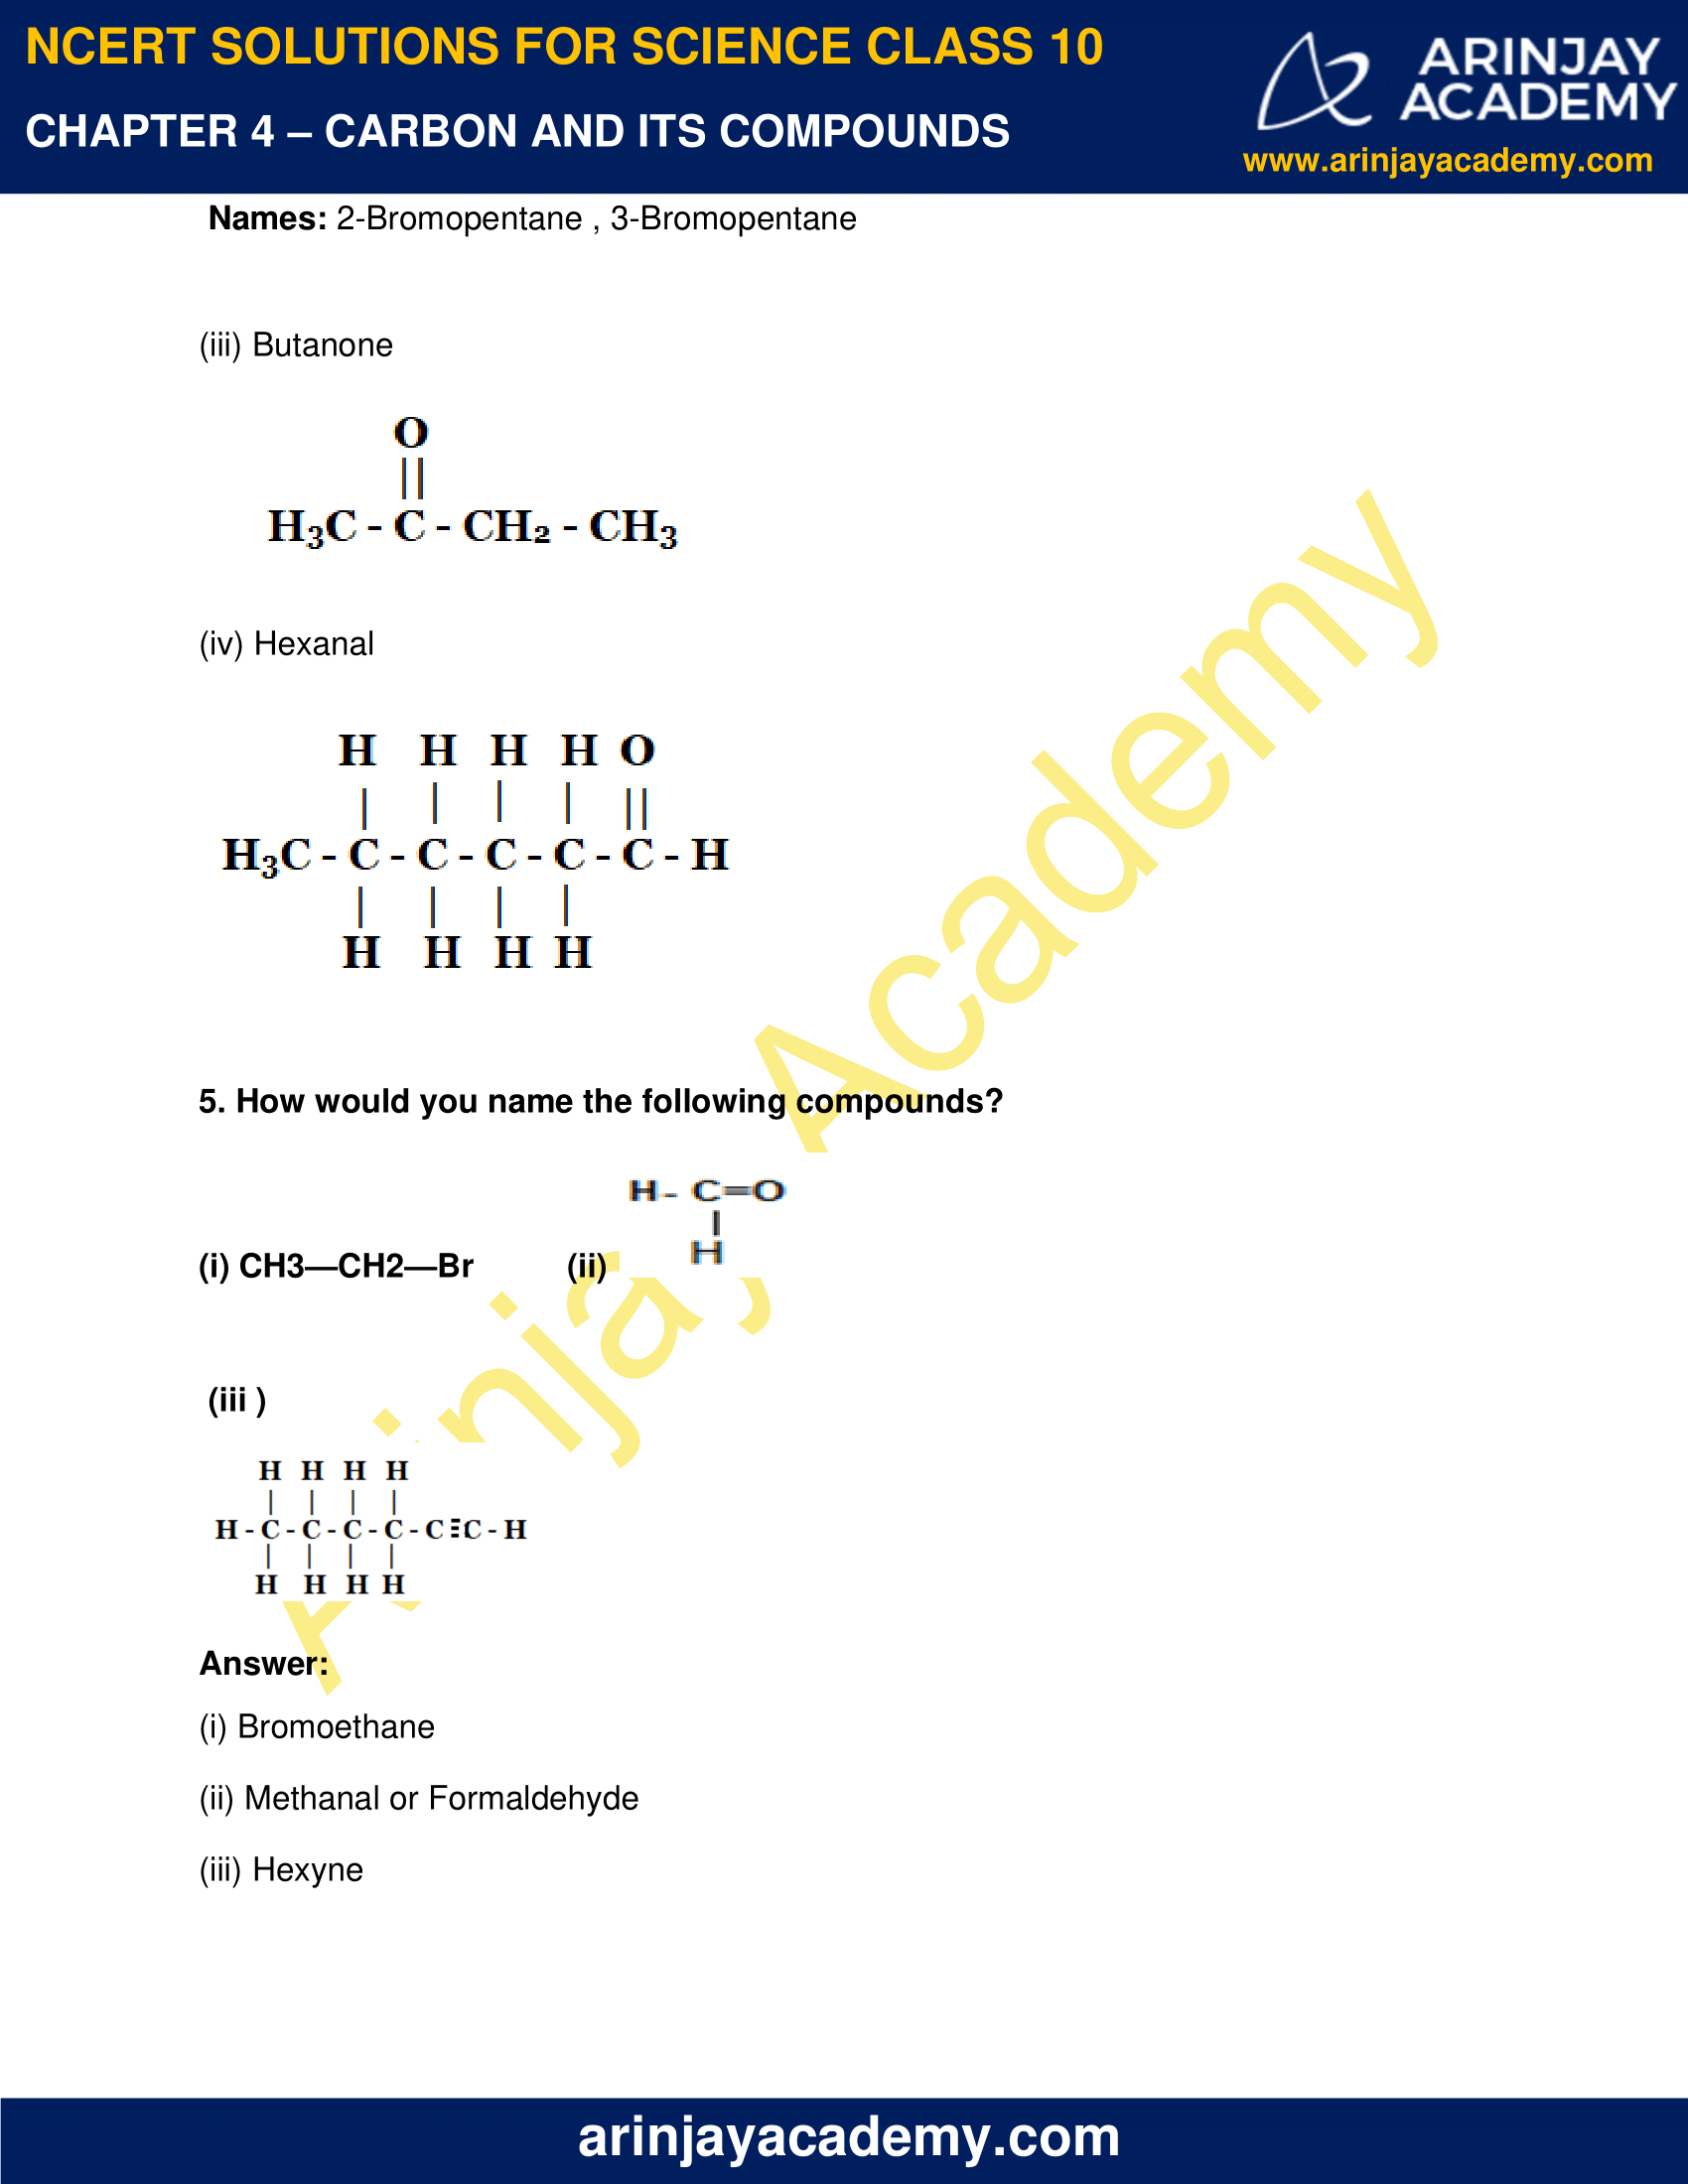 NCERT Solutions for Class 10 Science Chapter 4 image 4